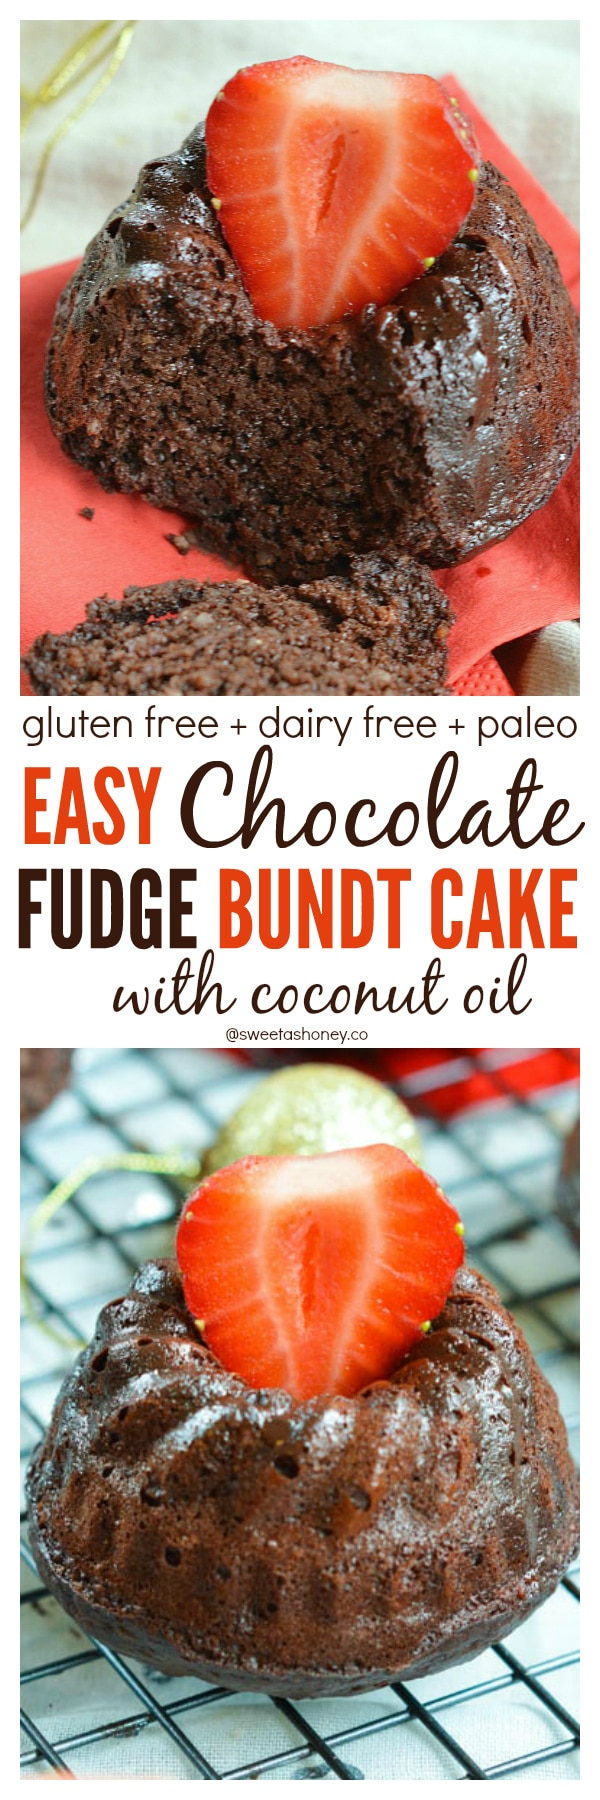 easy-chocolate-bundt-cake-healthy-gluten-free-paleo